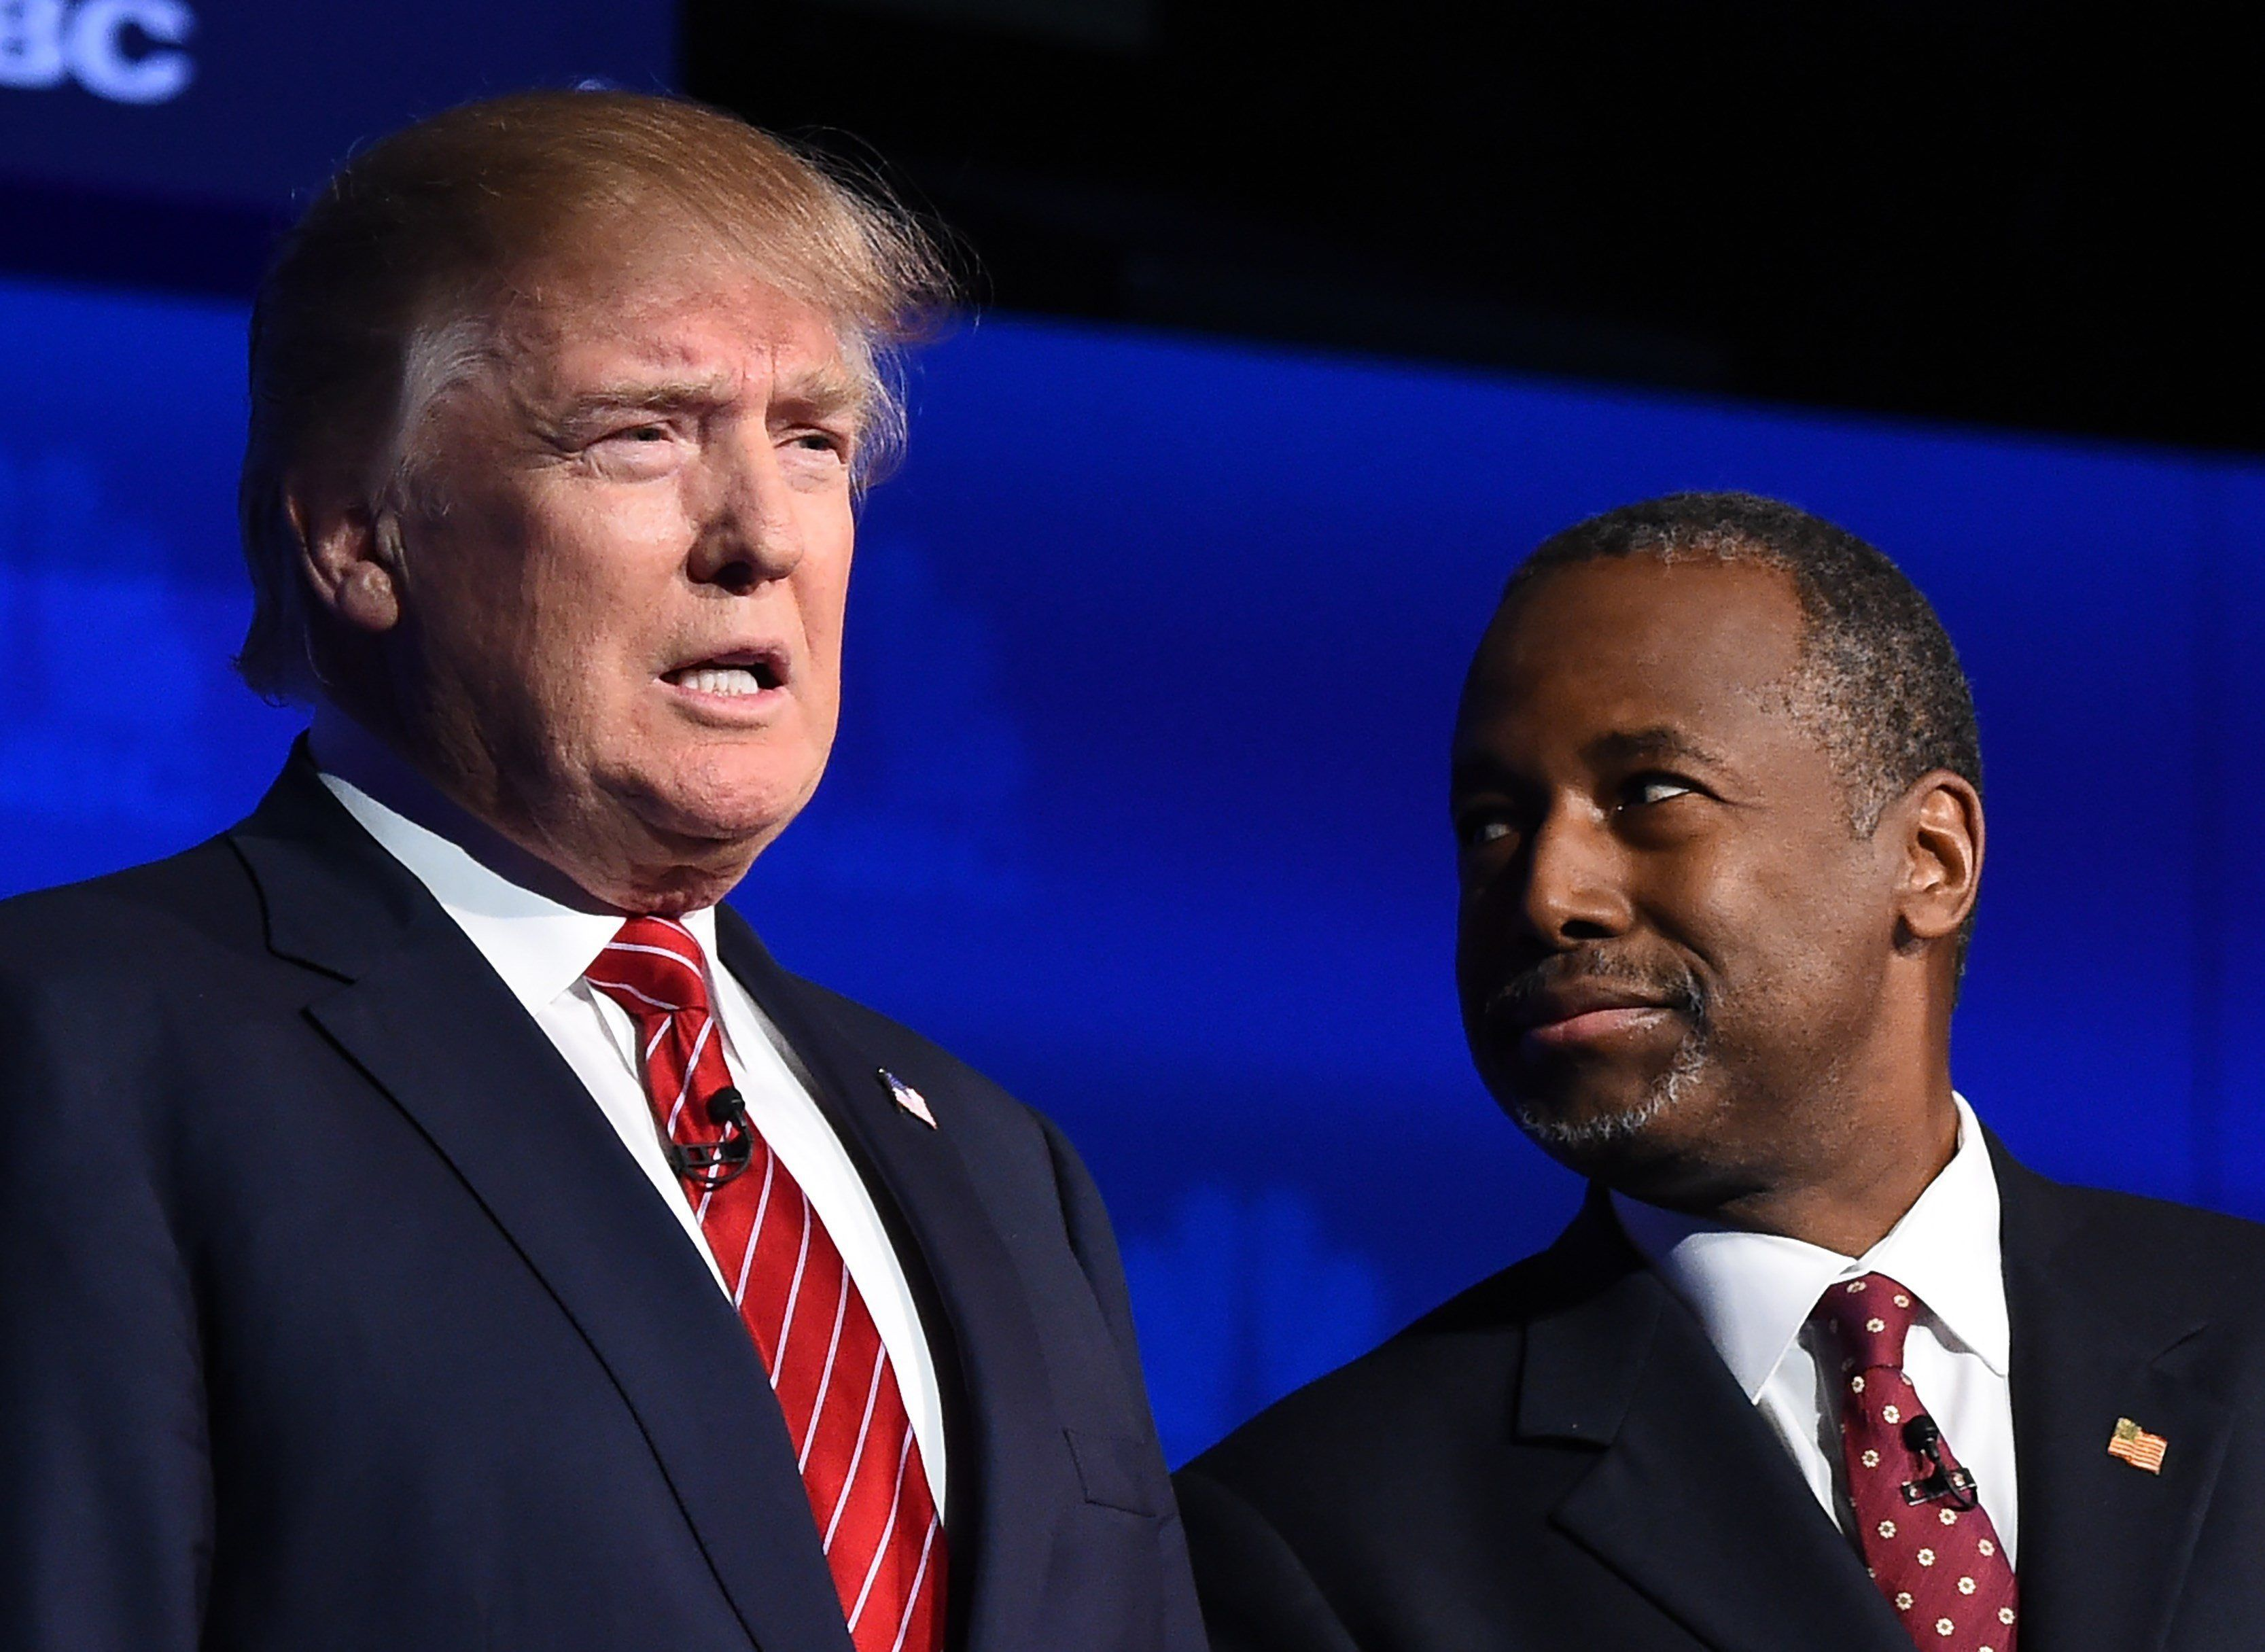 Republican presidential hopefuls Donald Trump and Ben Carson at the third Republican Presidential Debate, October 28, 2015 at the Coors Event Center at the University of Colorado in Boulder, Colorado.  AFP PHOTO / ROBYN BECK        (Photo credit should read ROBYN BECK/AFP/Getty Images)